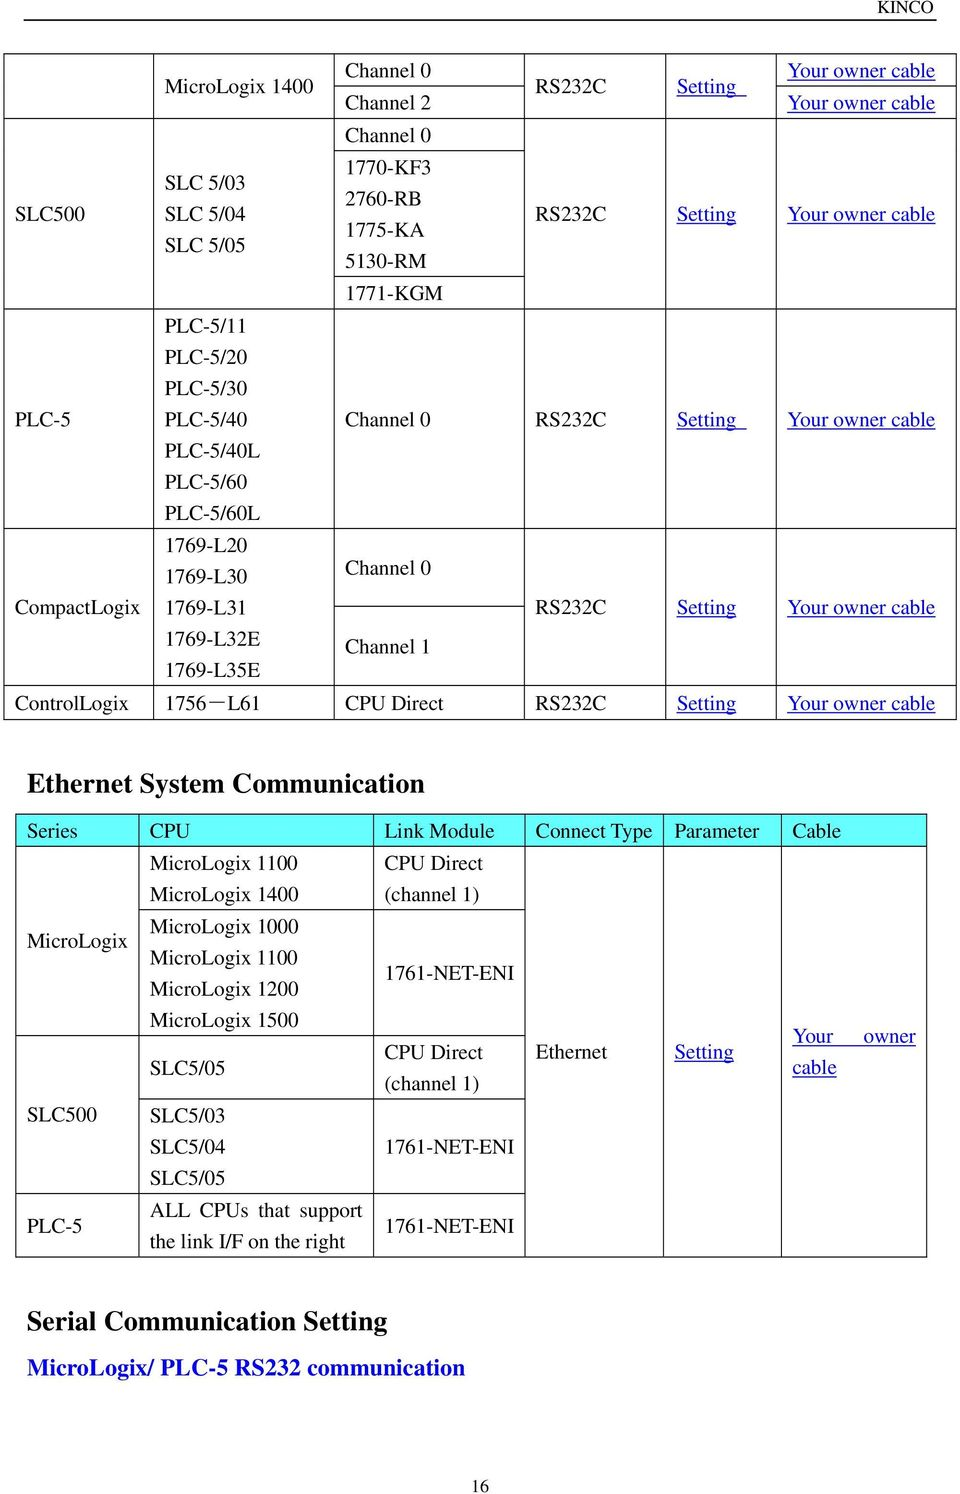 Contents Mt5000 4000 Series Hmi And Plc Connecting Guide Pdf Modbus Wiring Diagram Automation Direct Cable 1769 L32e L35e Channel 1 Controllogix 1756 L61 Cpu Rs232c